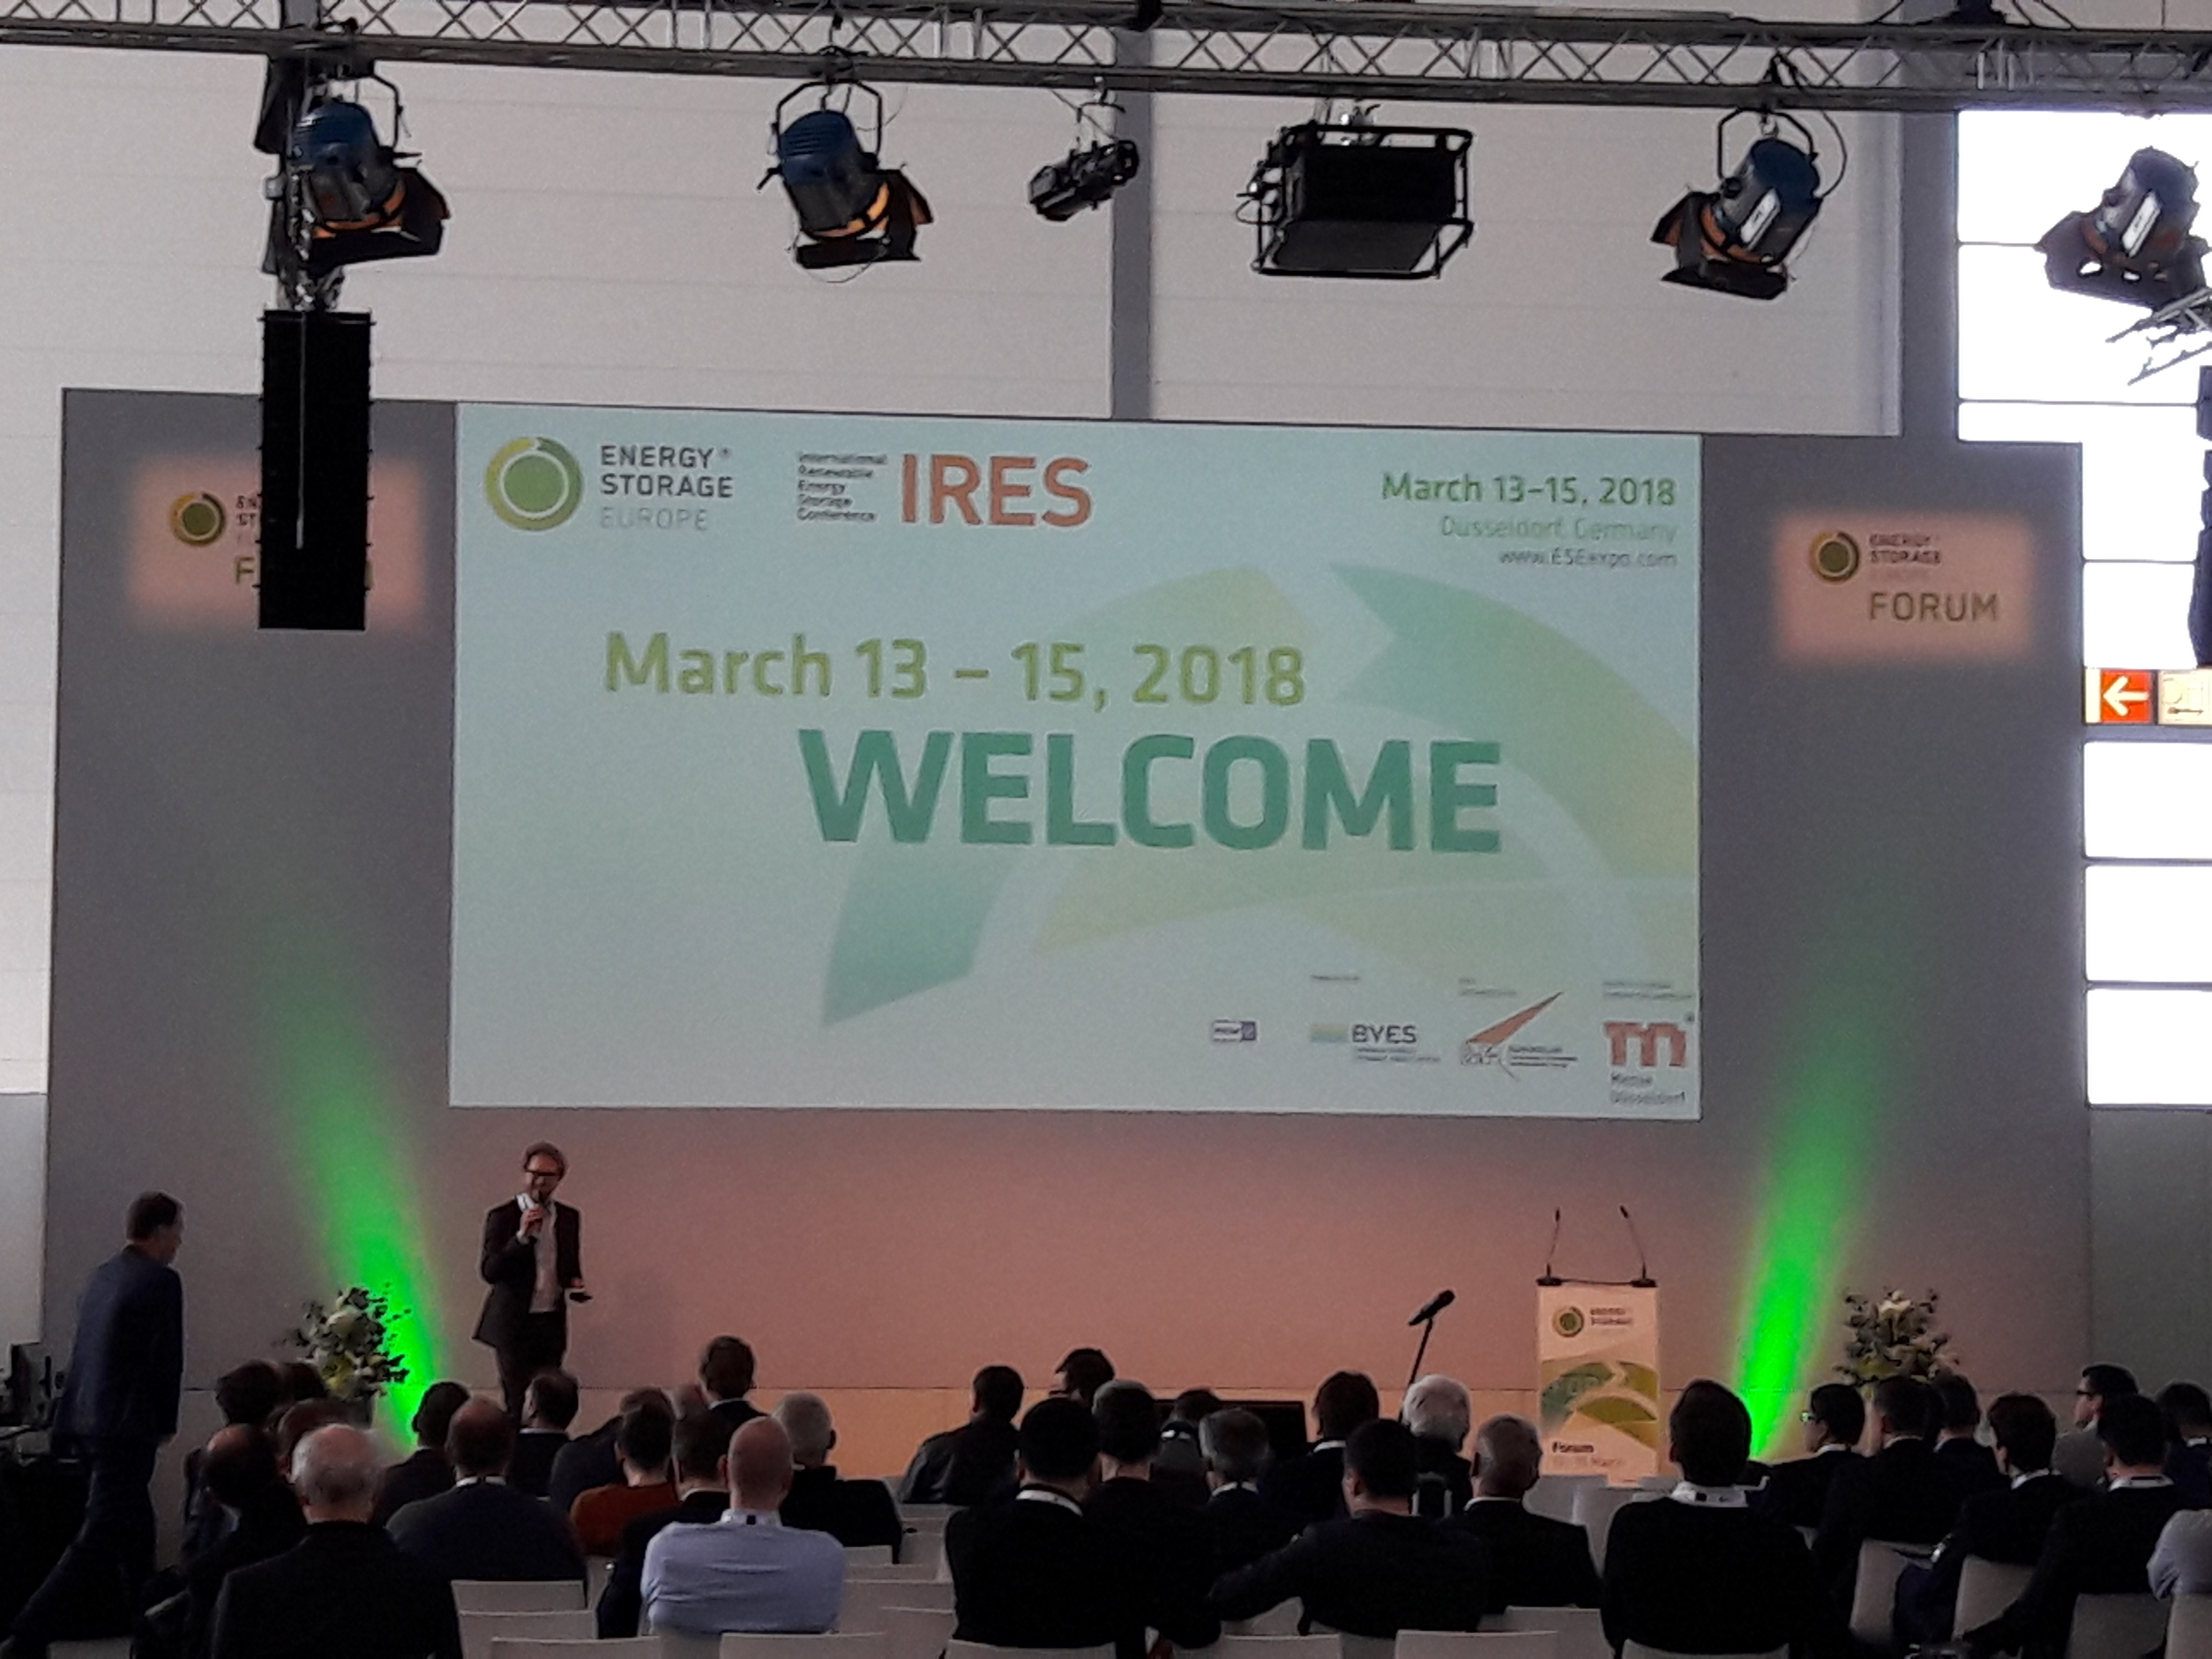 Energy Storage Europe Conference stage 2018